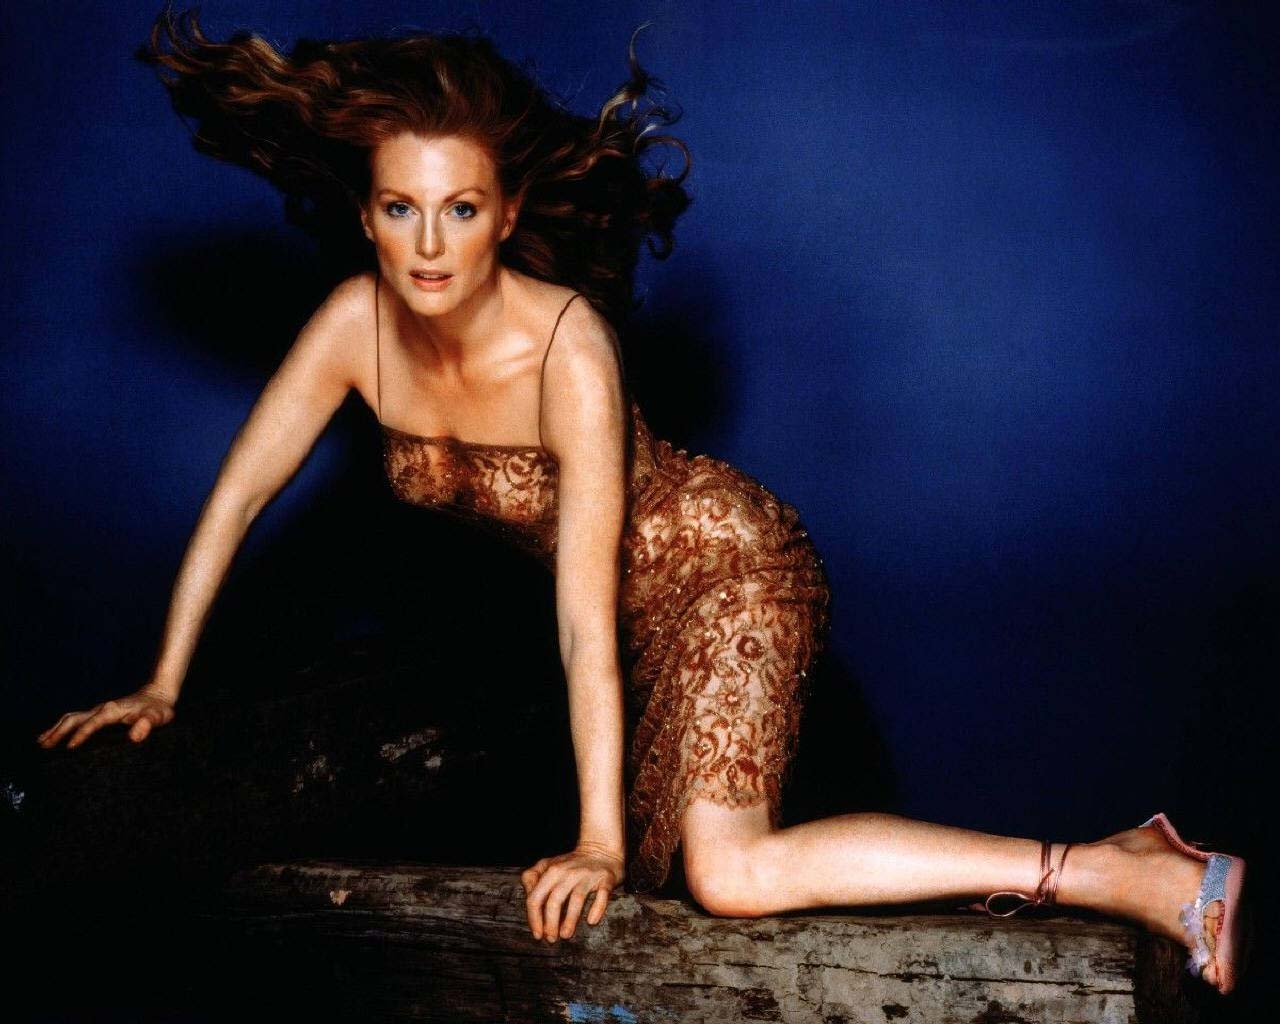 Julianne moore hot images